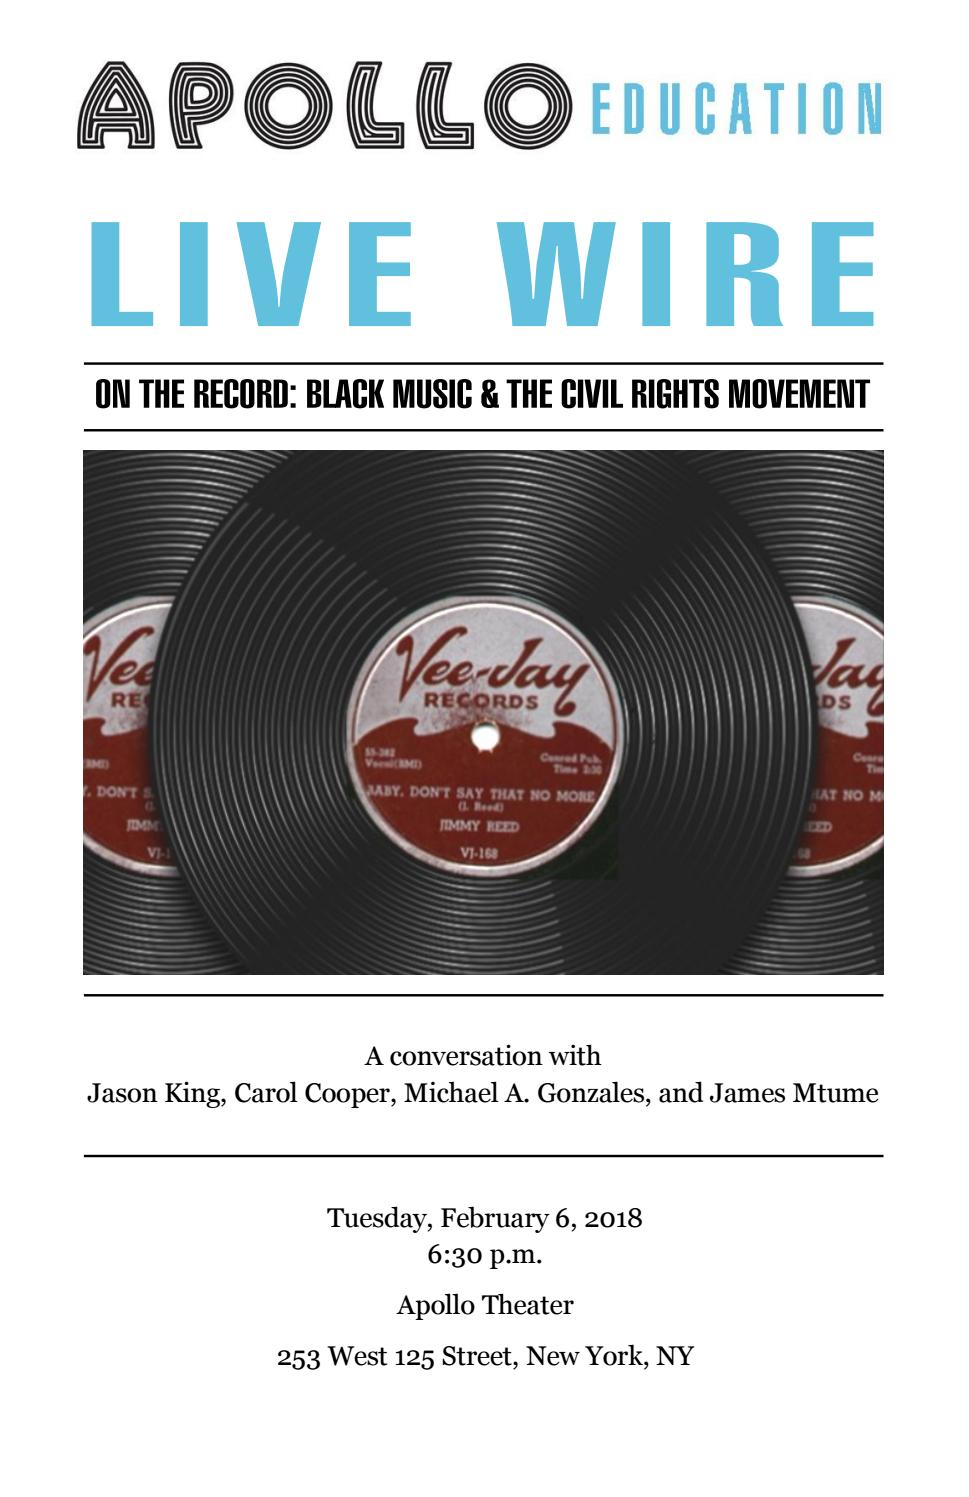 Apollo Live Wire: On the Record - Black Music and the Civil Rights Movement  by Apollo Education - issuu